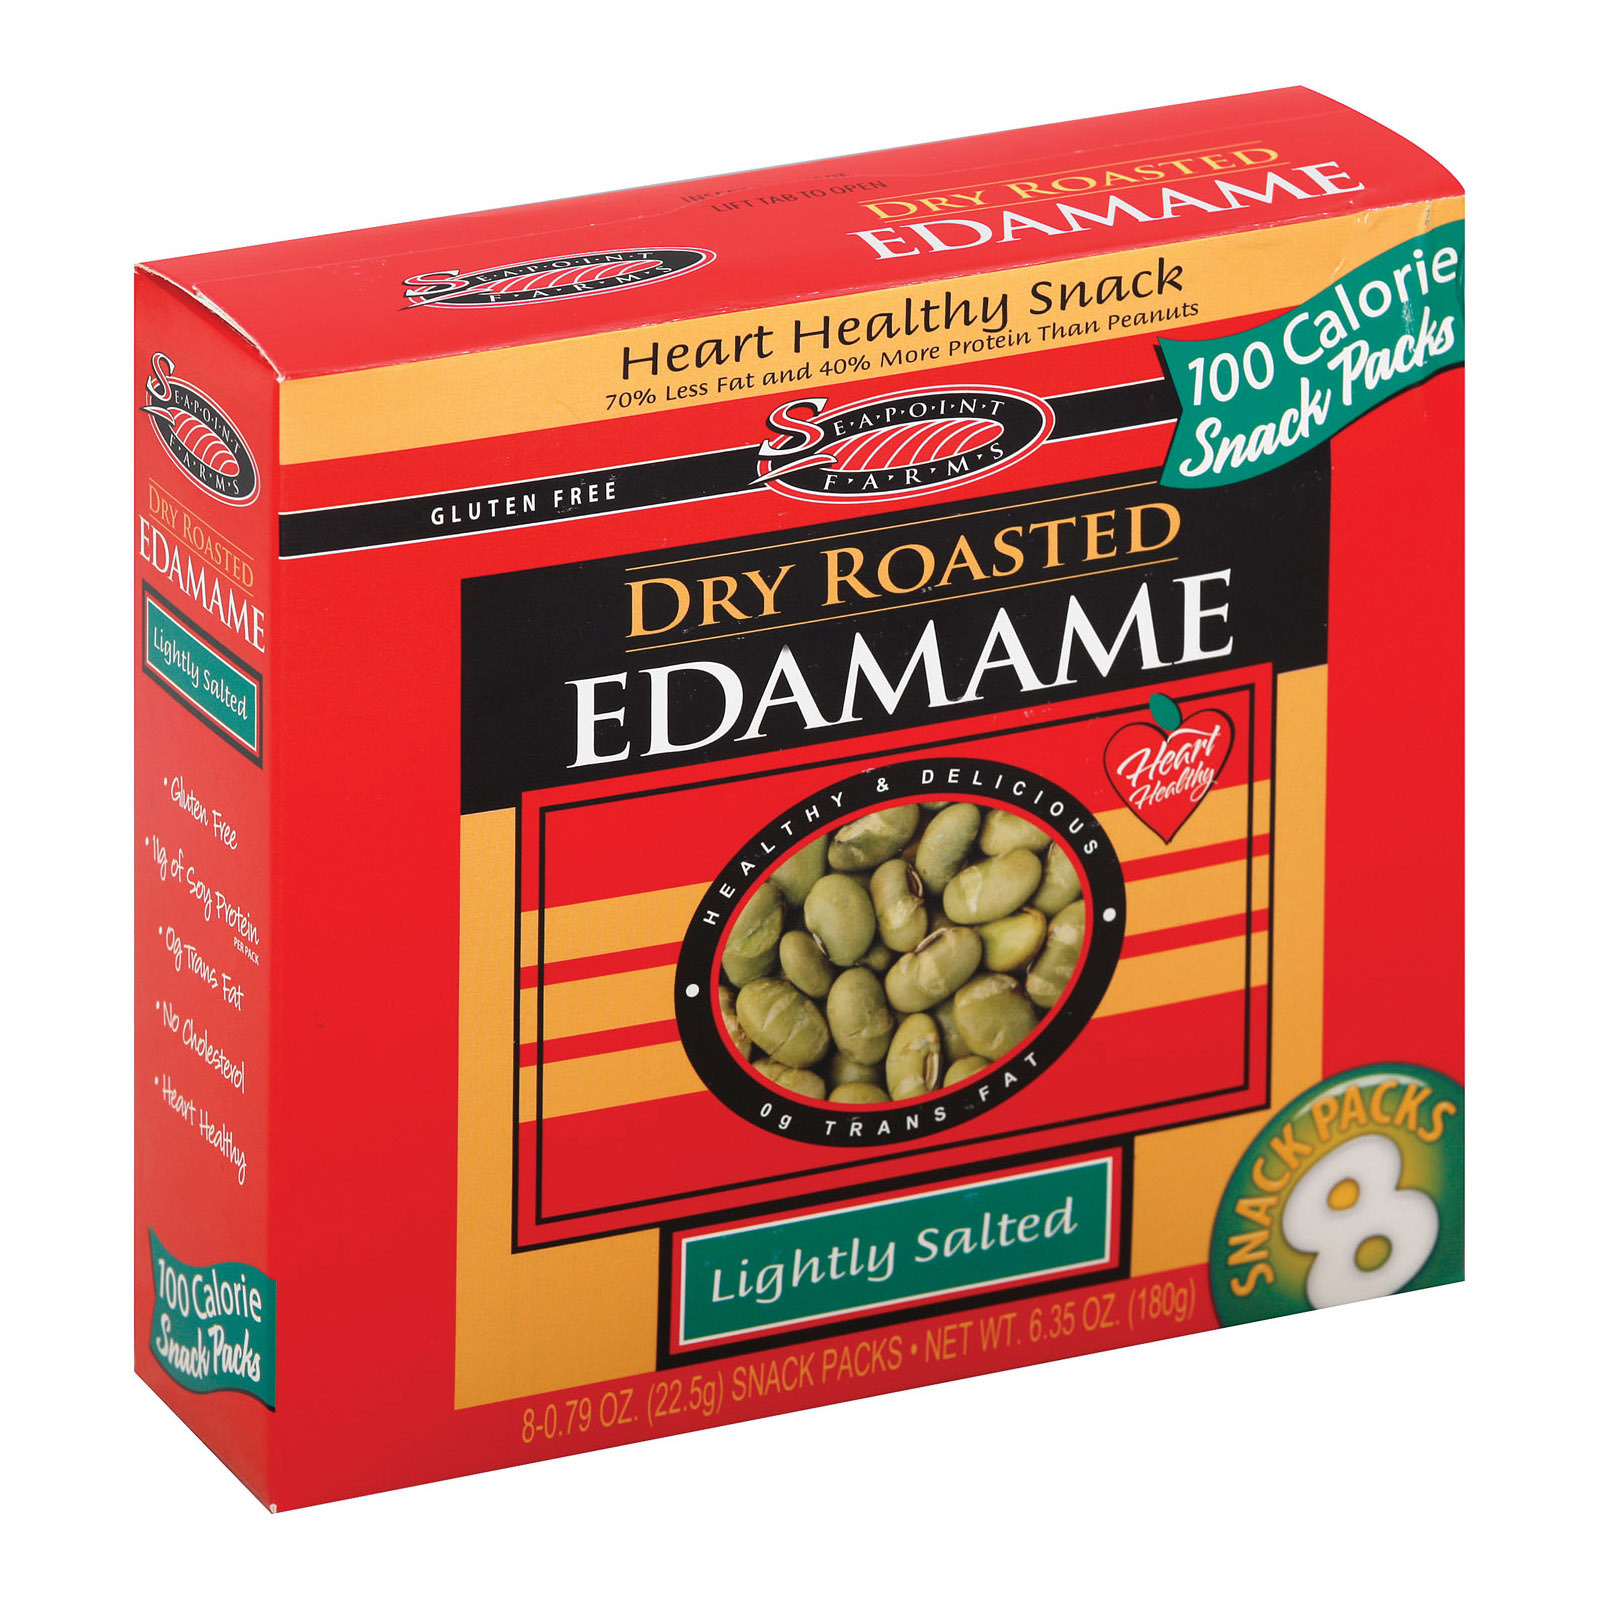 Seapoint Farms Dry Roasted Edamame - Lightly Salted - Case of 12 - 0.79 oz.